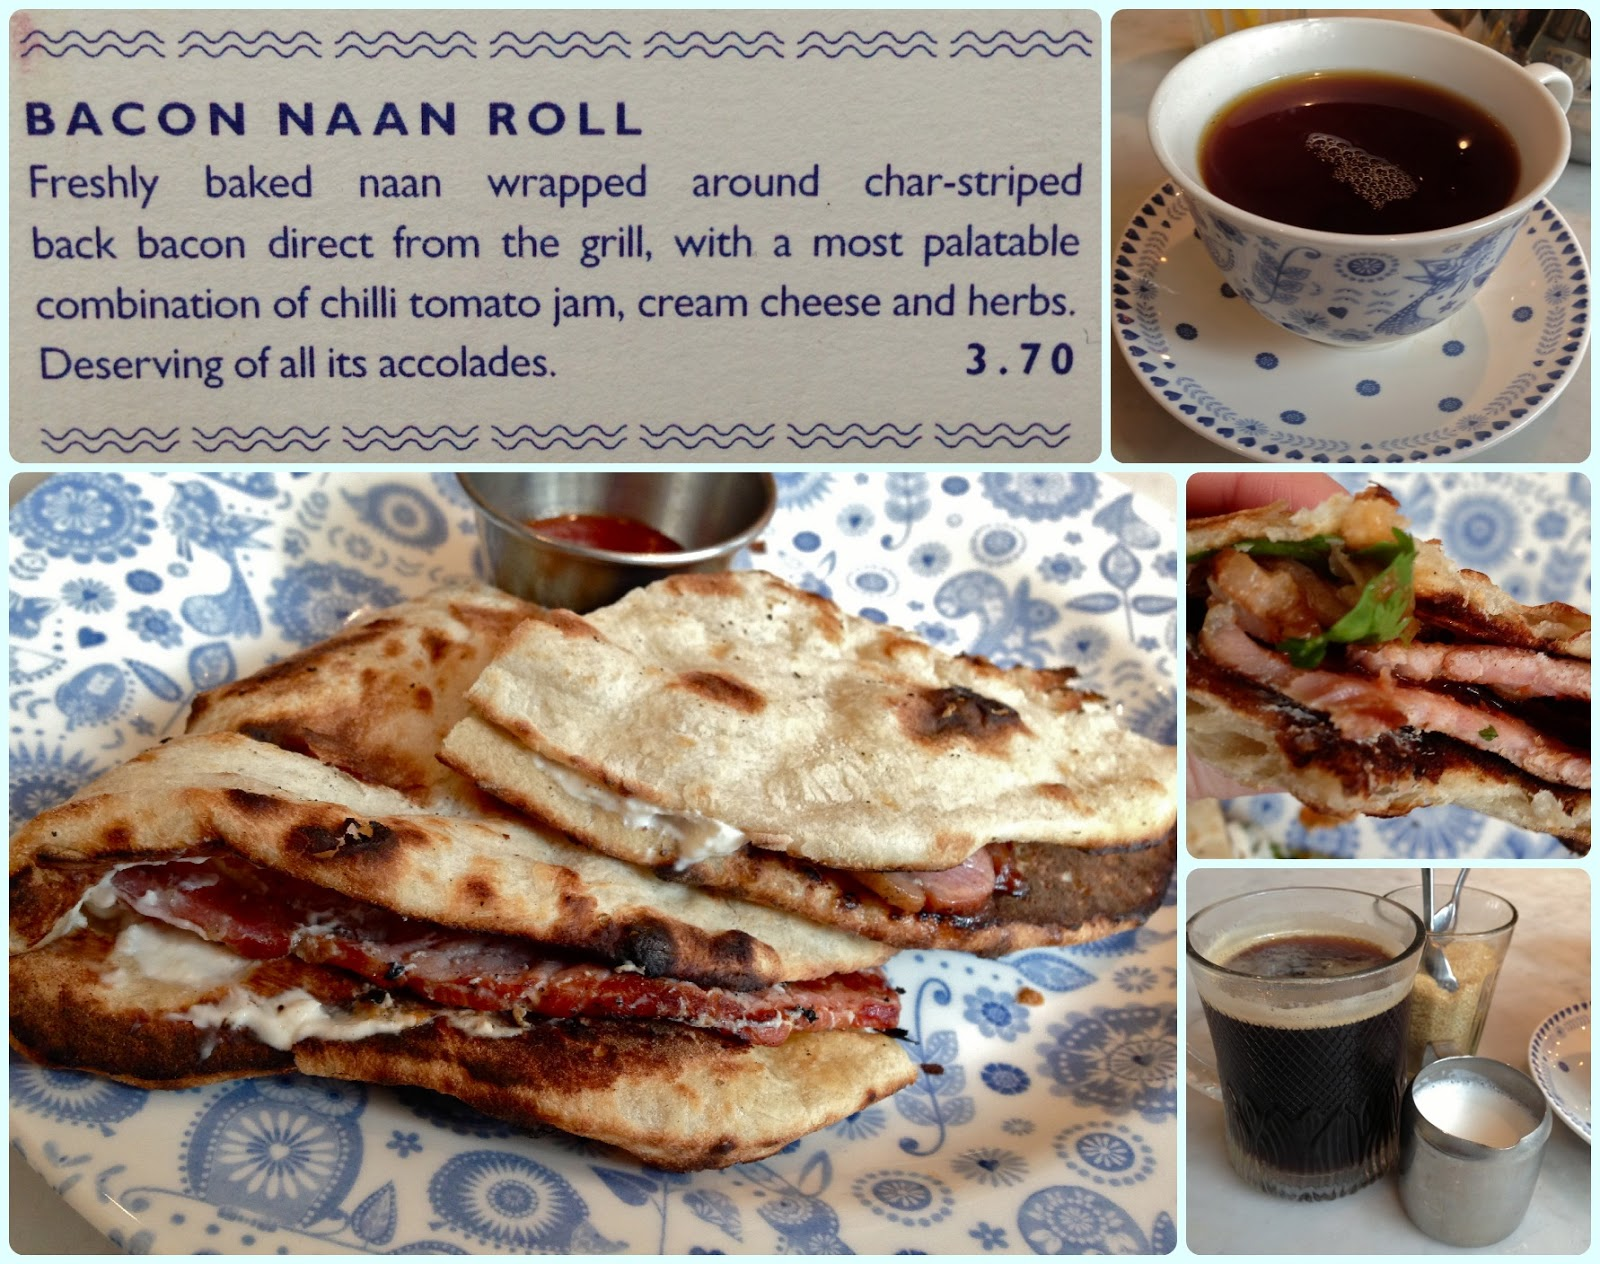 Dishoom covent garden london dollybakes - Dishoom Bacon Naan Roll